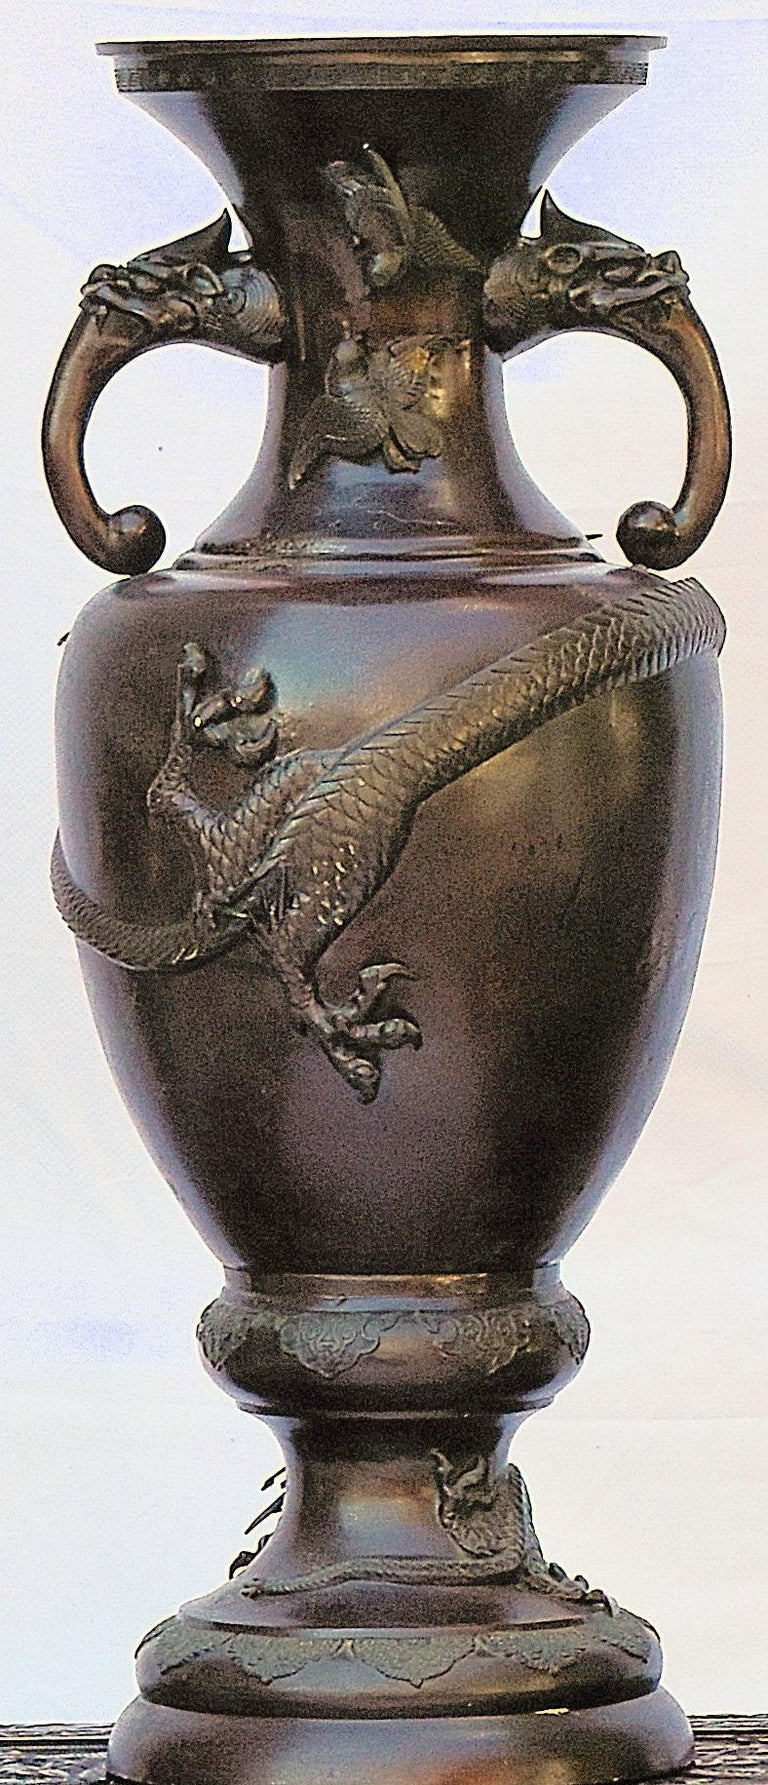 Chinese bronze altar vase decorated in the Archaistic style with mythical beast loop handles and a large dragon wrapping around the front of the vase.  bkx1